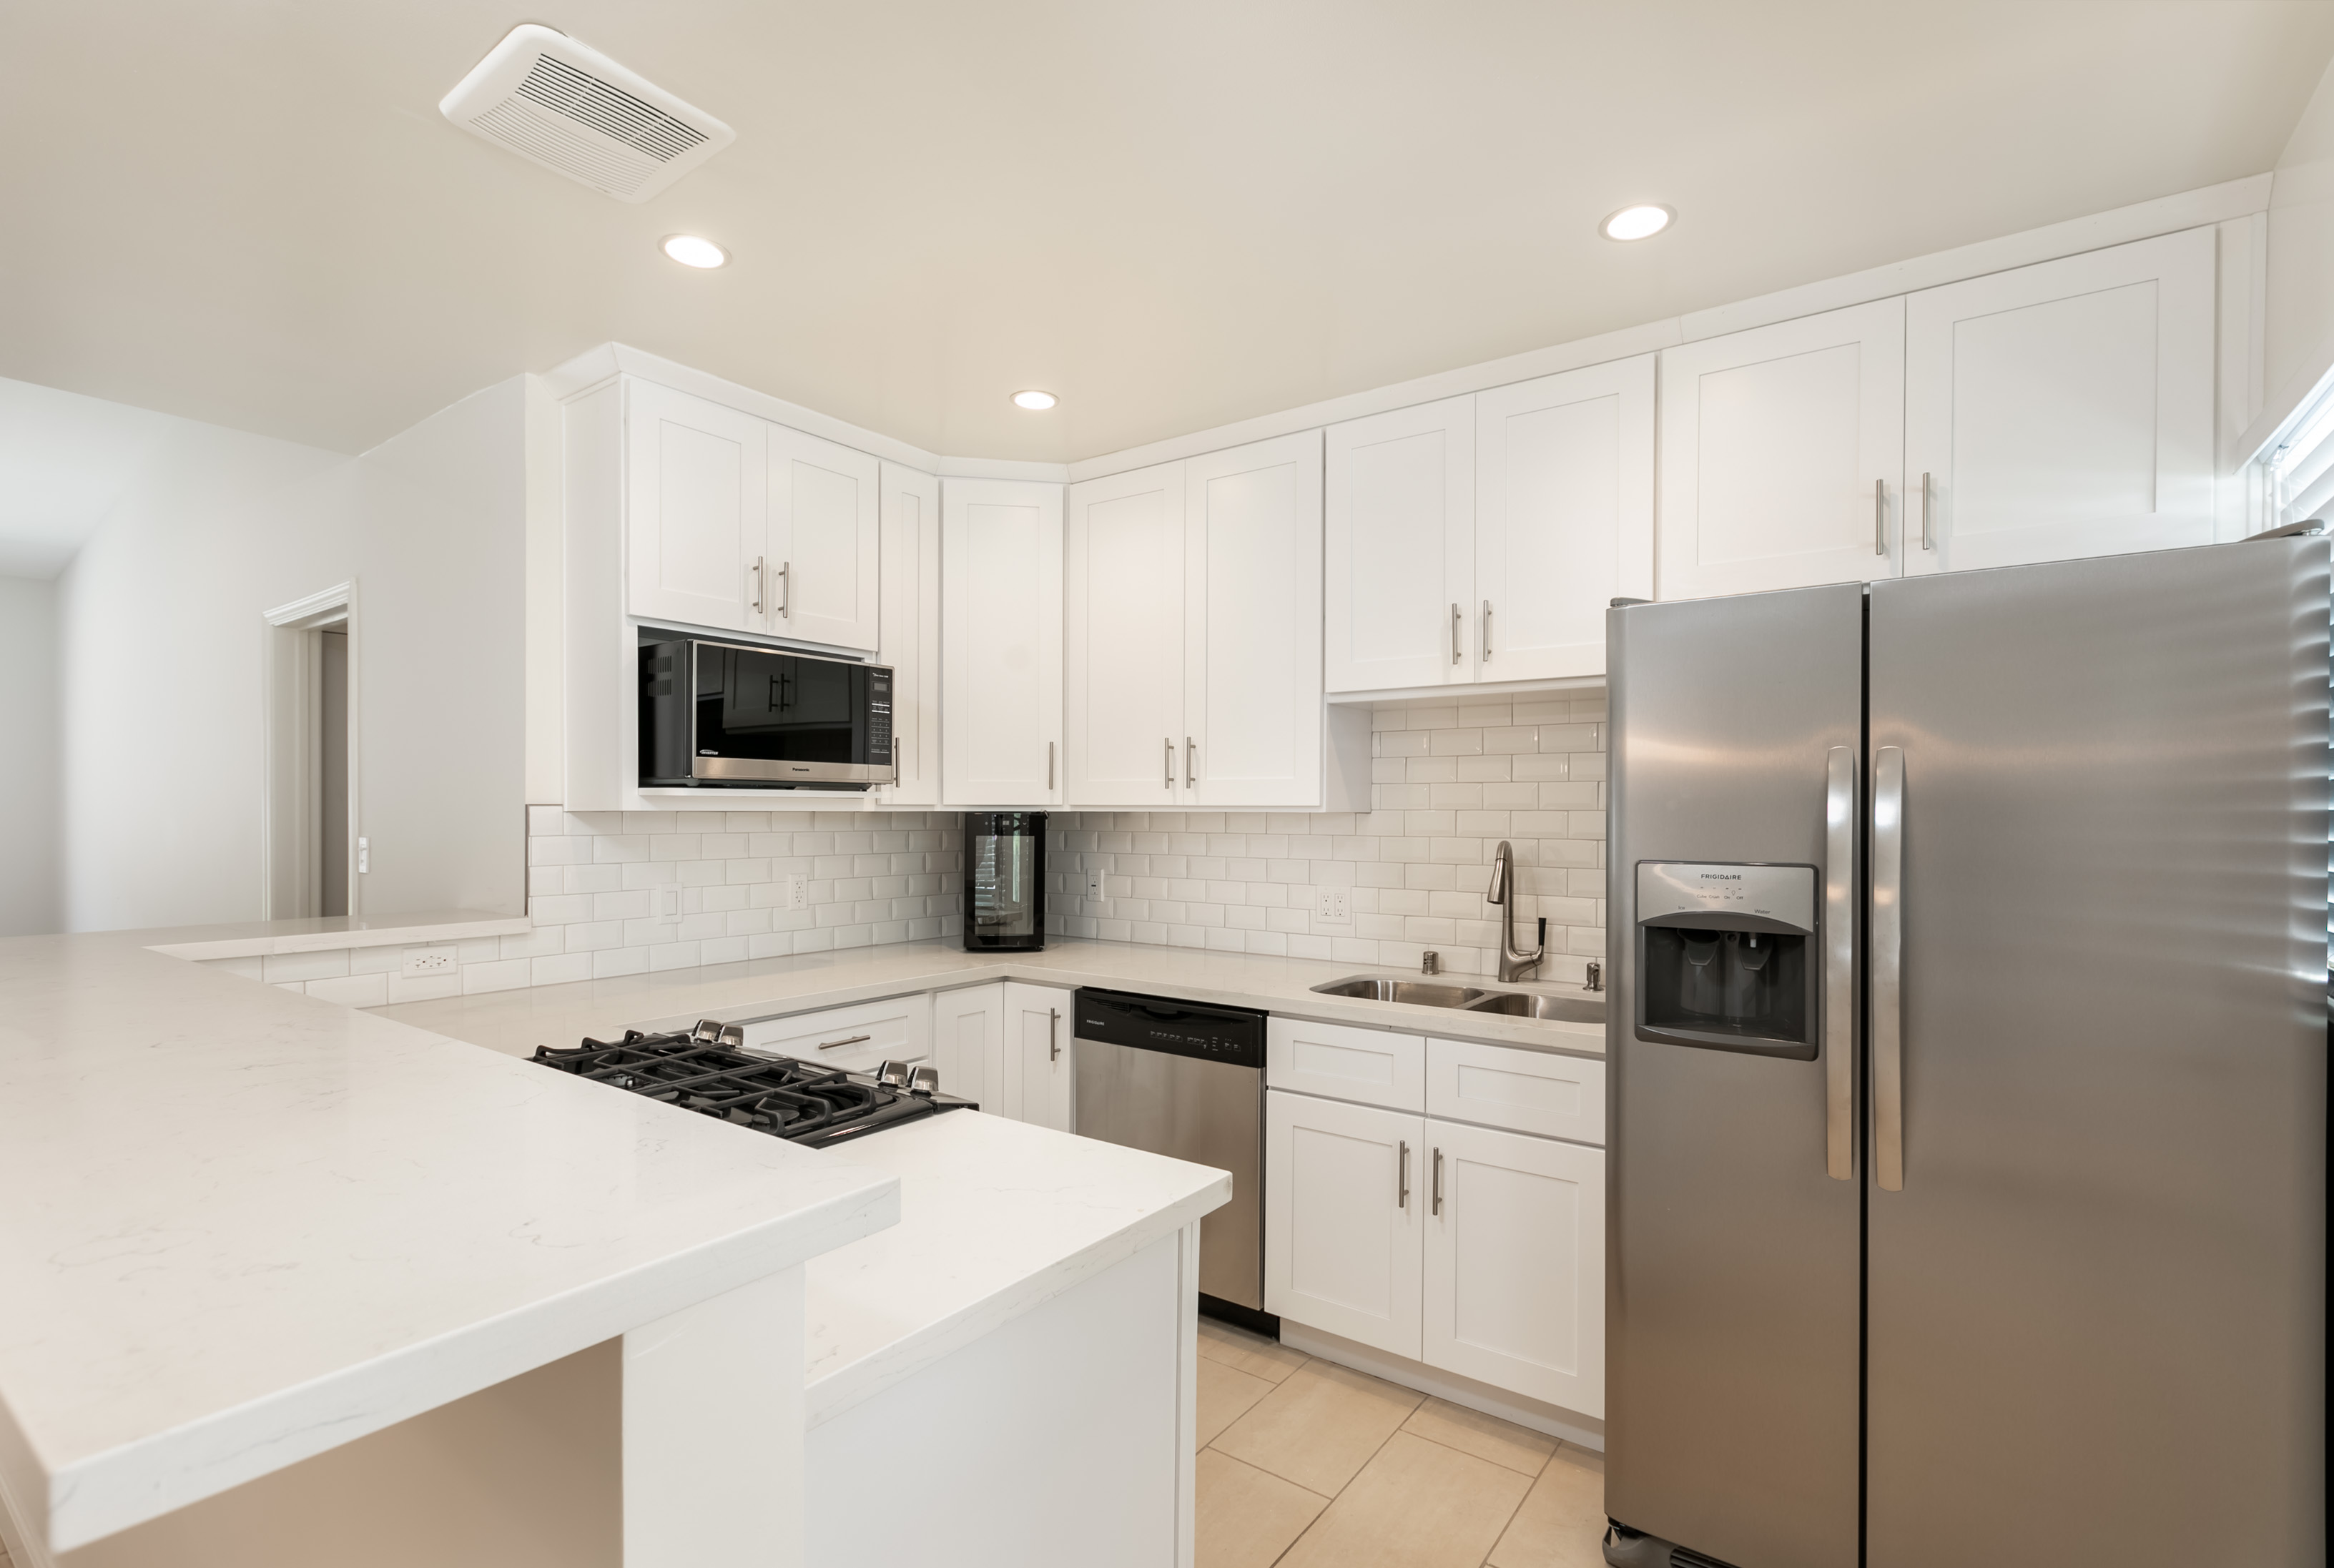 Meticulously Re-Imagined Apartments! Two Bedroom/ Two Bathroom- NEWLY RENOVATED DREAM